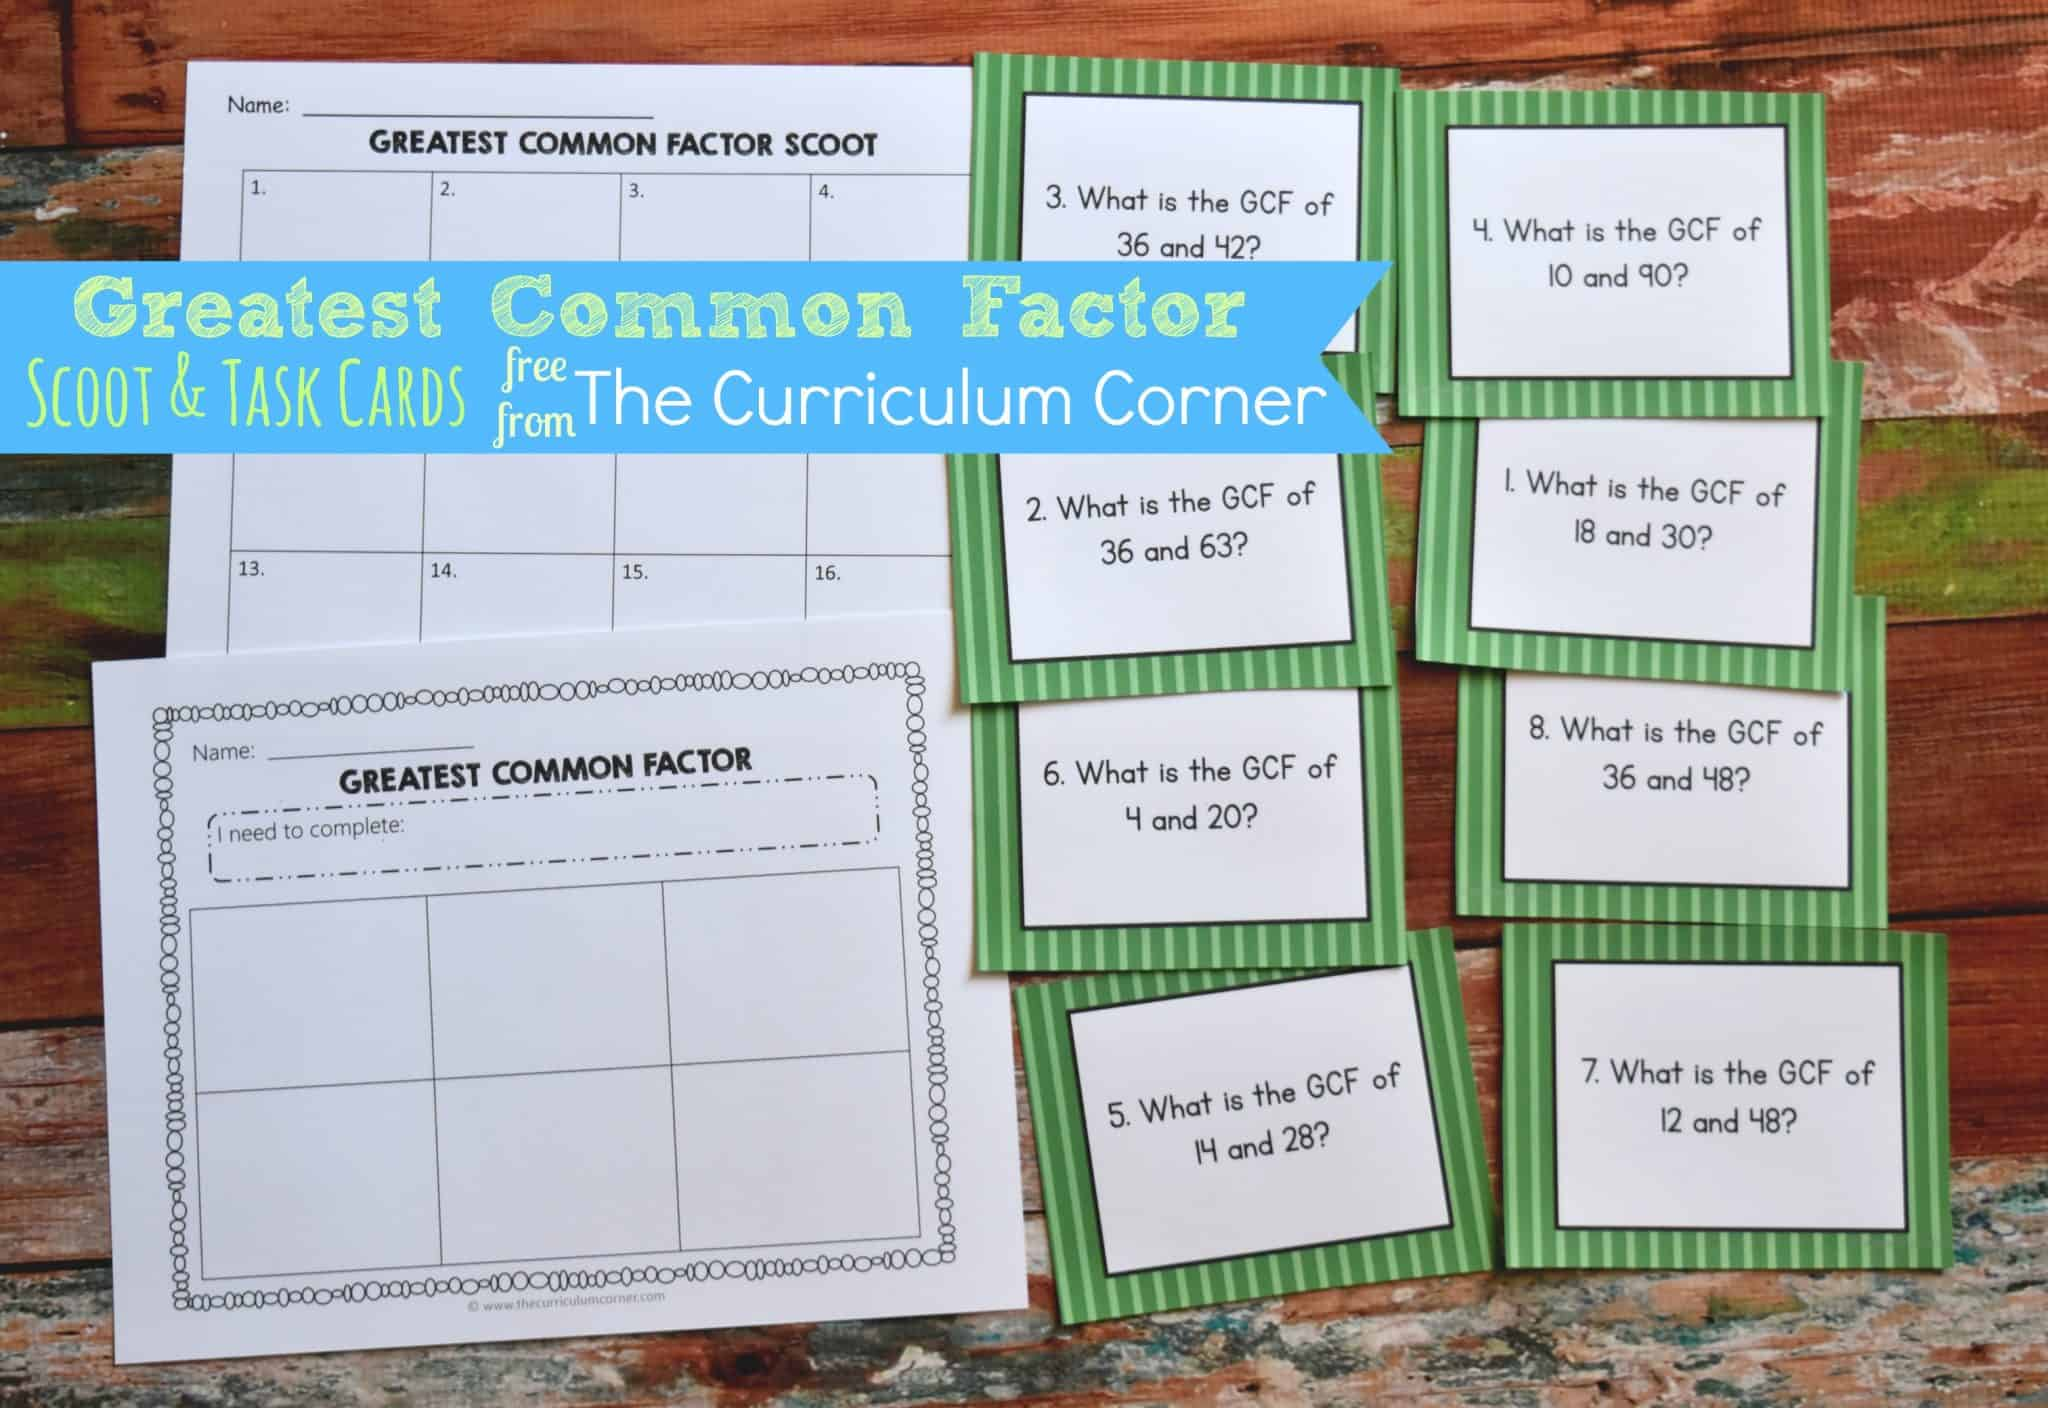 Greatest Common Factor Scoot